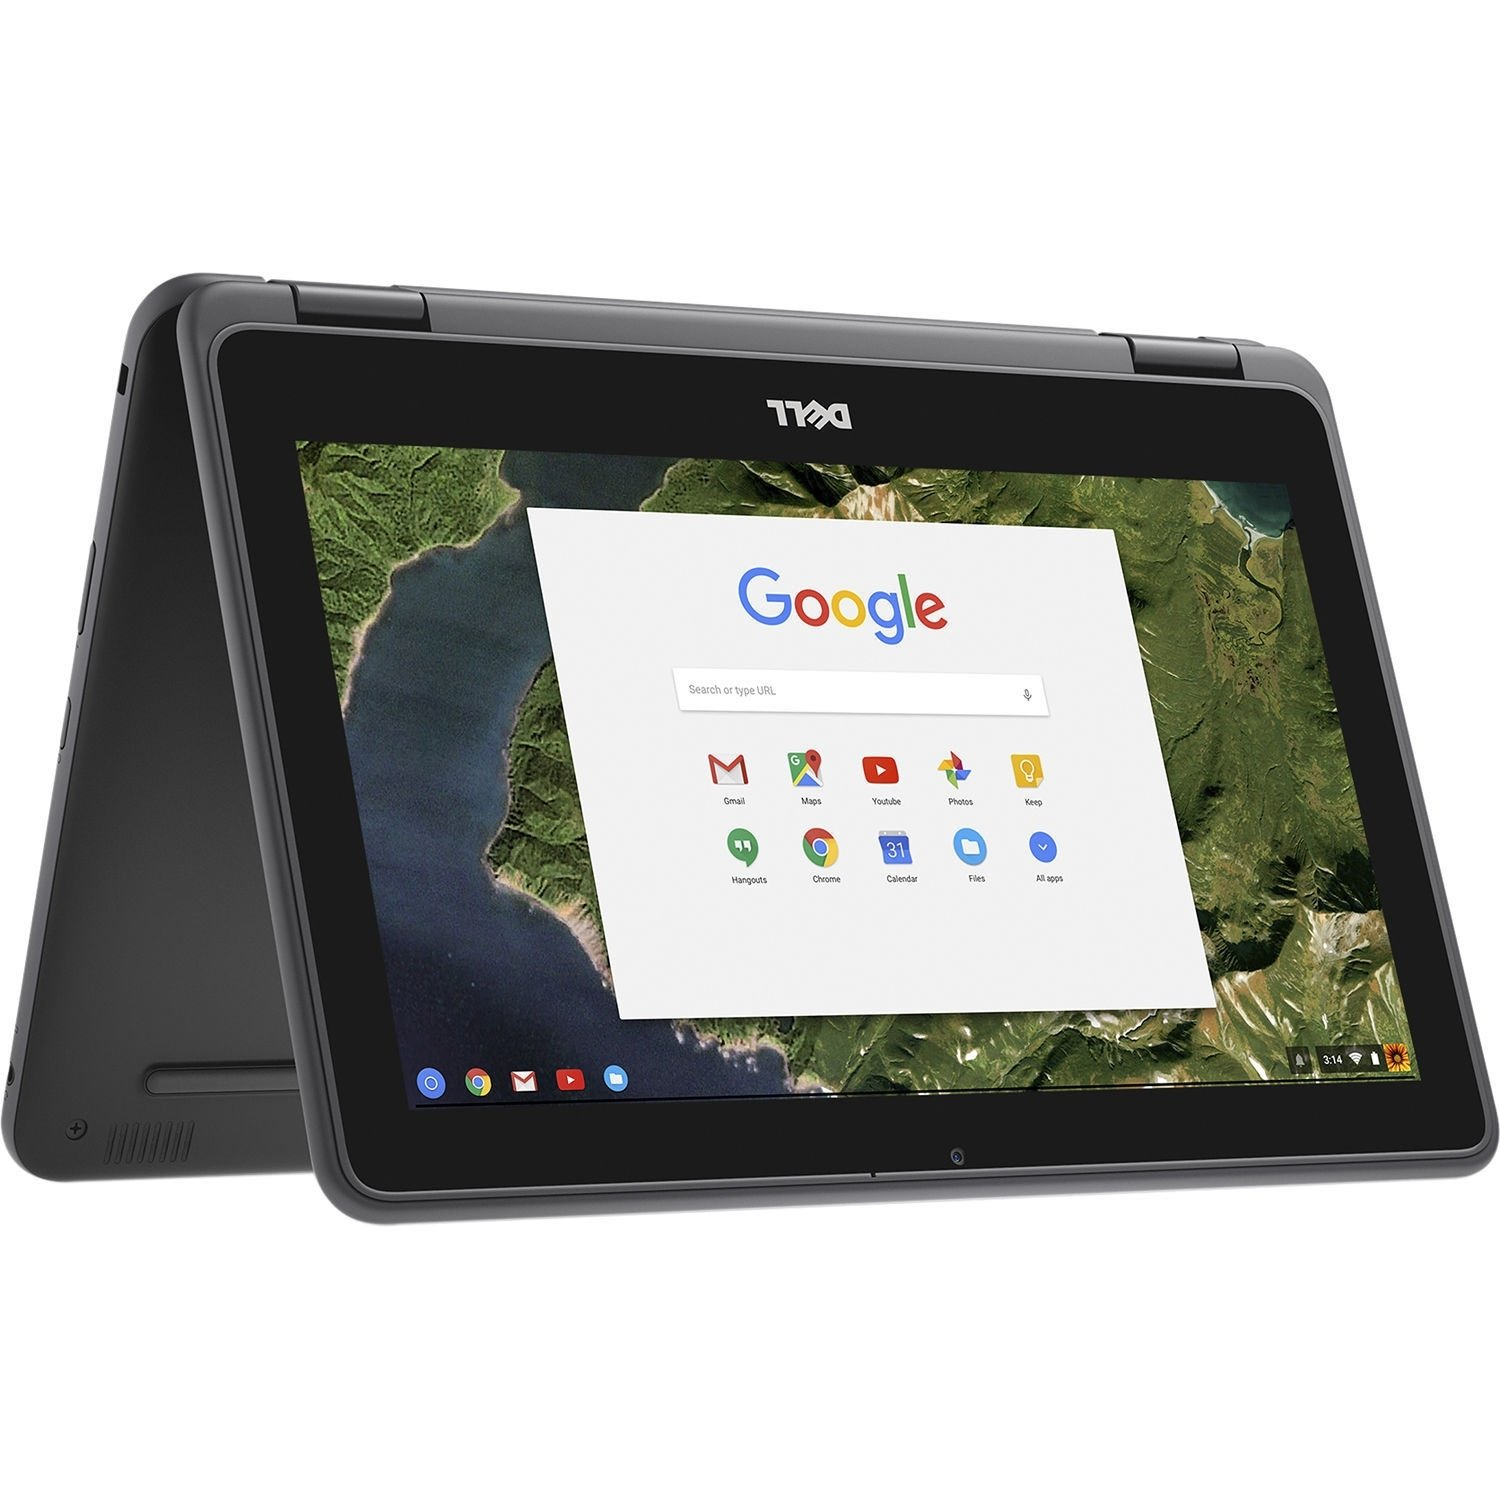 Dell Chromebook 11 - 3189 Intel Celeron N3060 X2 1.6GHz 4GB 32GB, Black (Certified Refurbished)